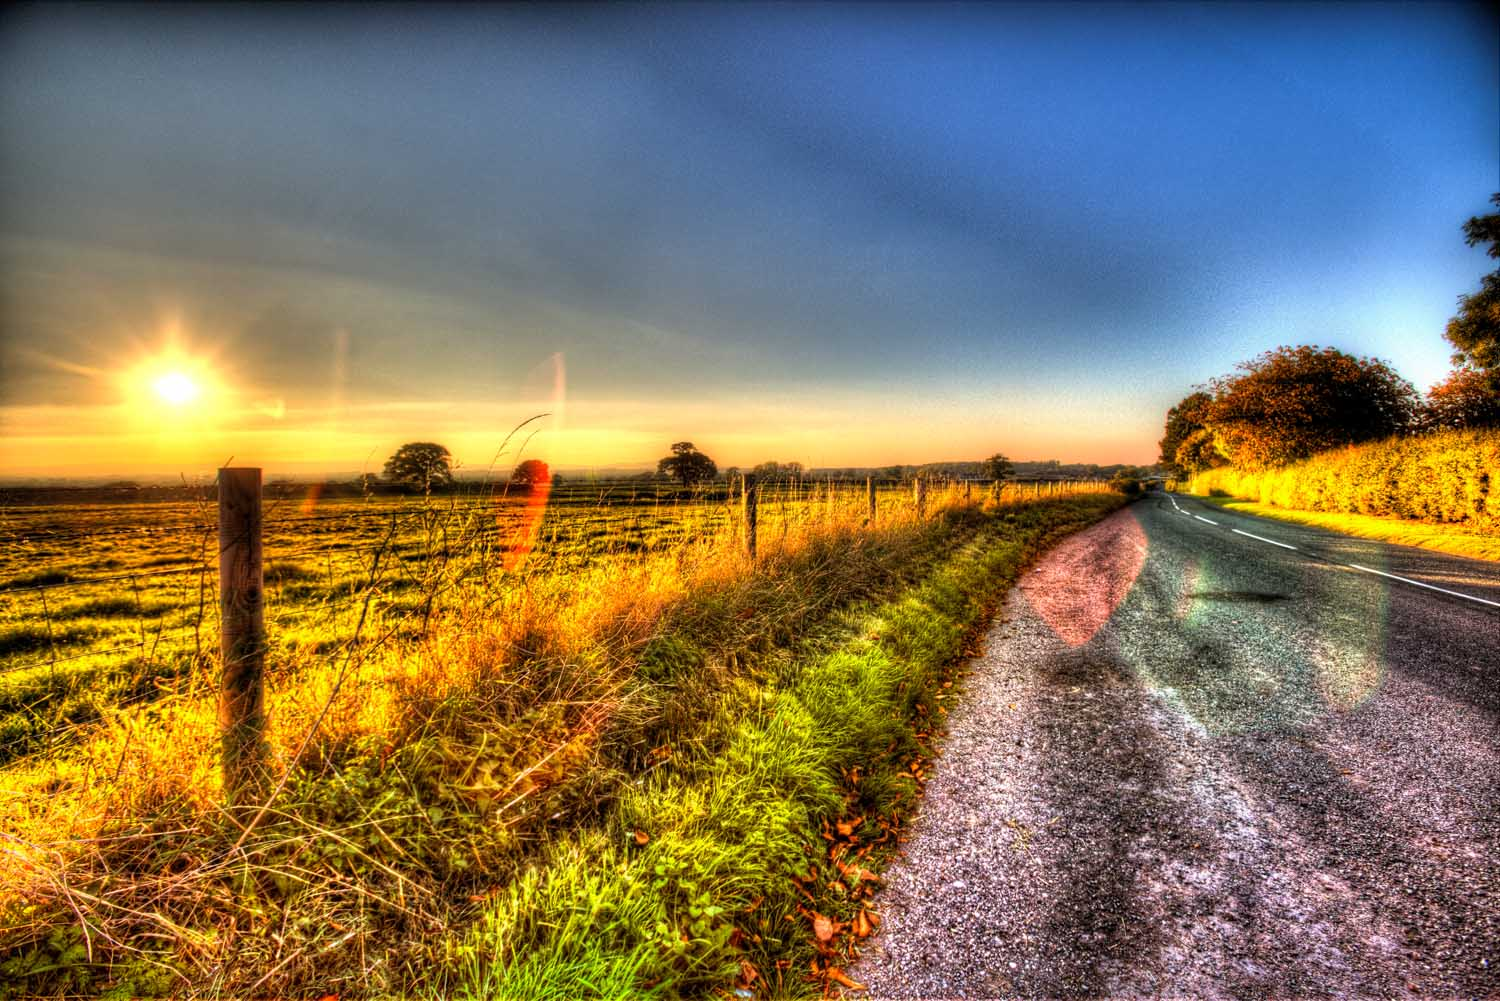 Village of Shocklach, Cheshire, England. Artistic sunset view over a rural road and Cheshire field, near the village of Shocklach.